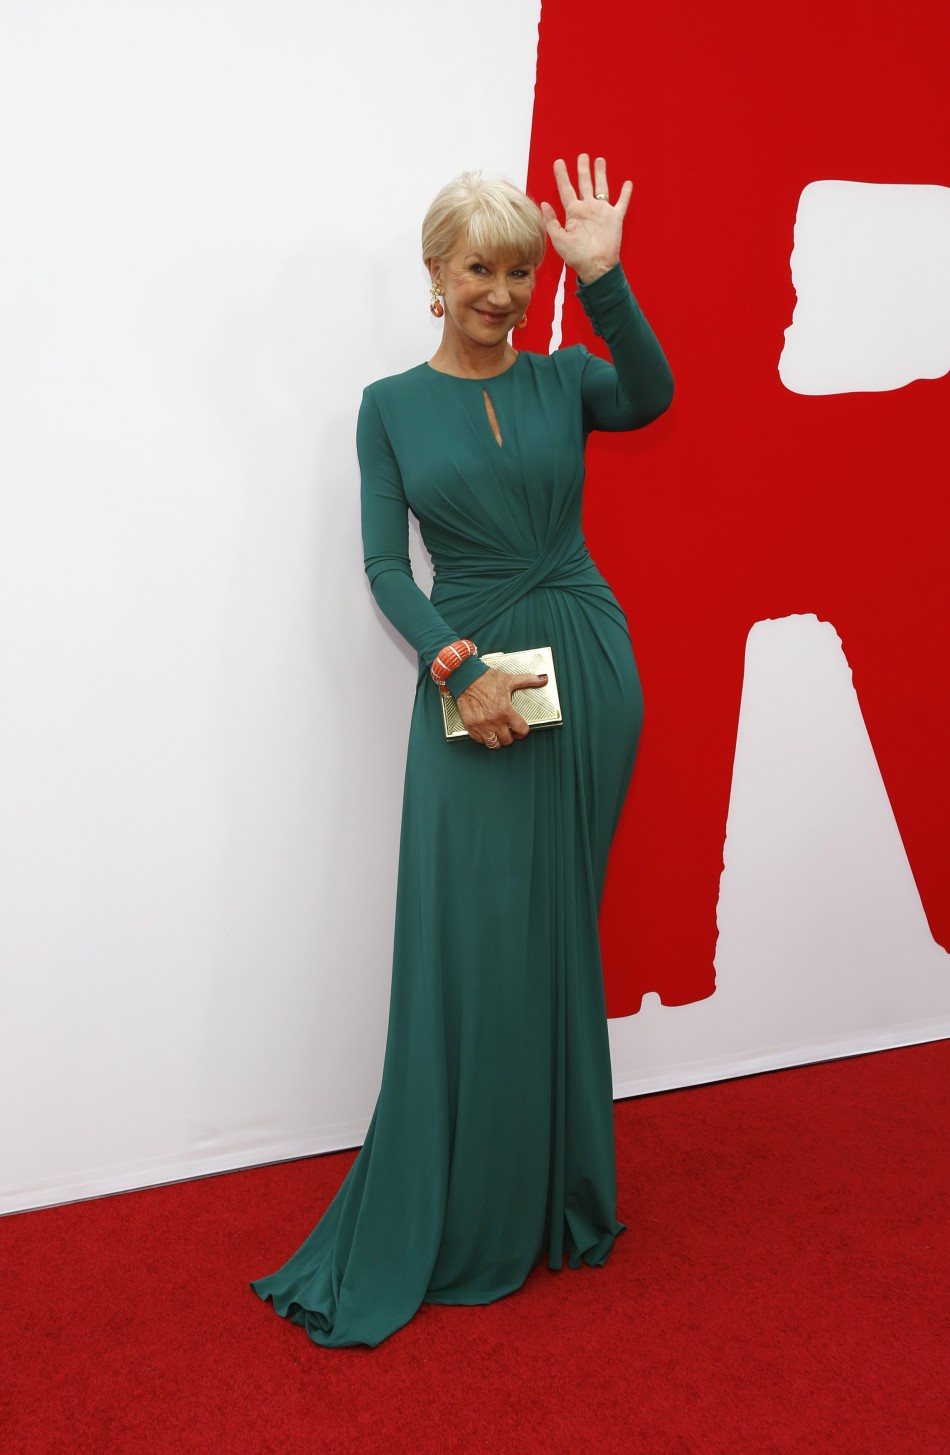 Helen Mirren waves at the premiere of the film Red 2 in Los Angeles, California July 11, 2013.